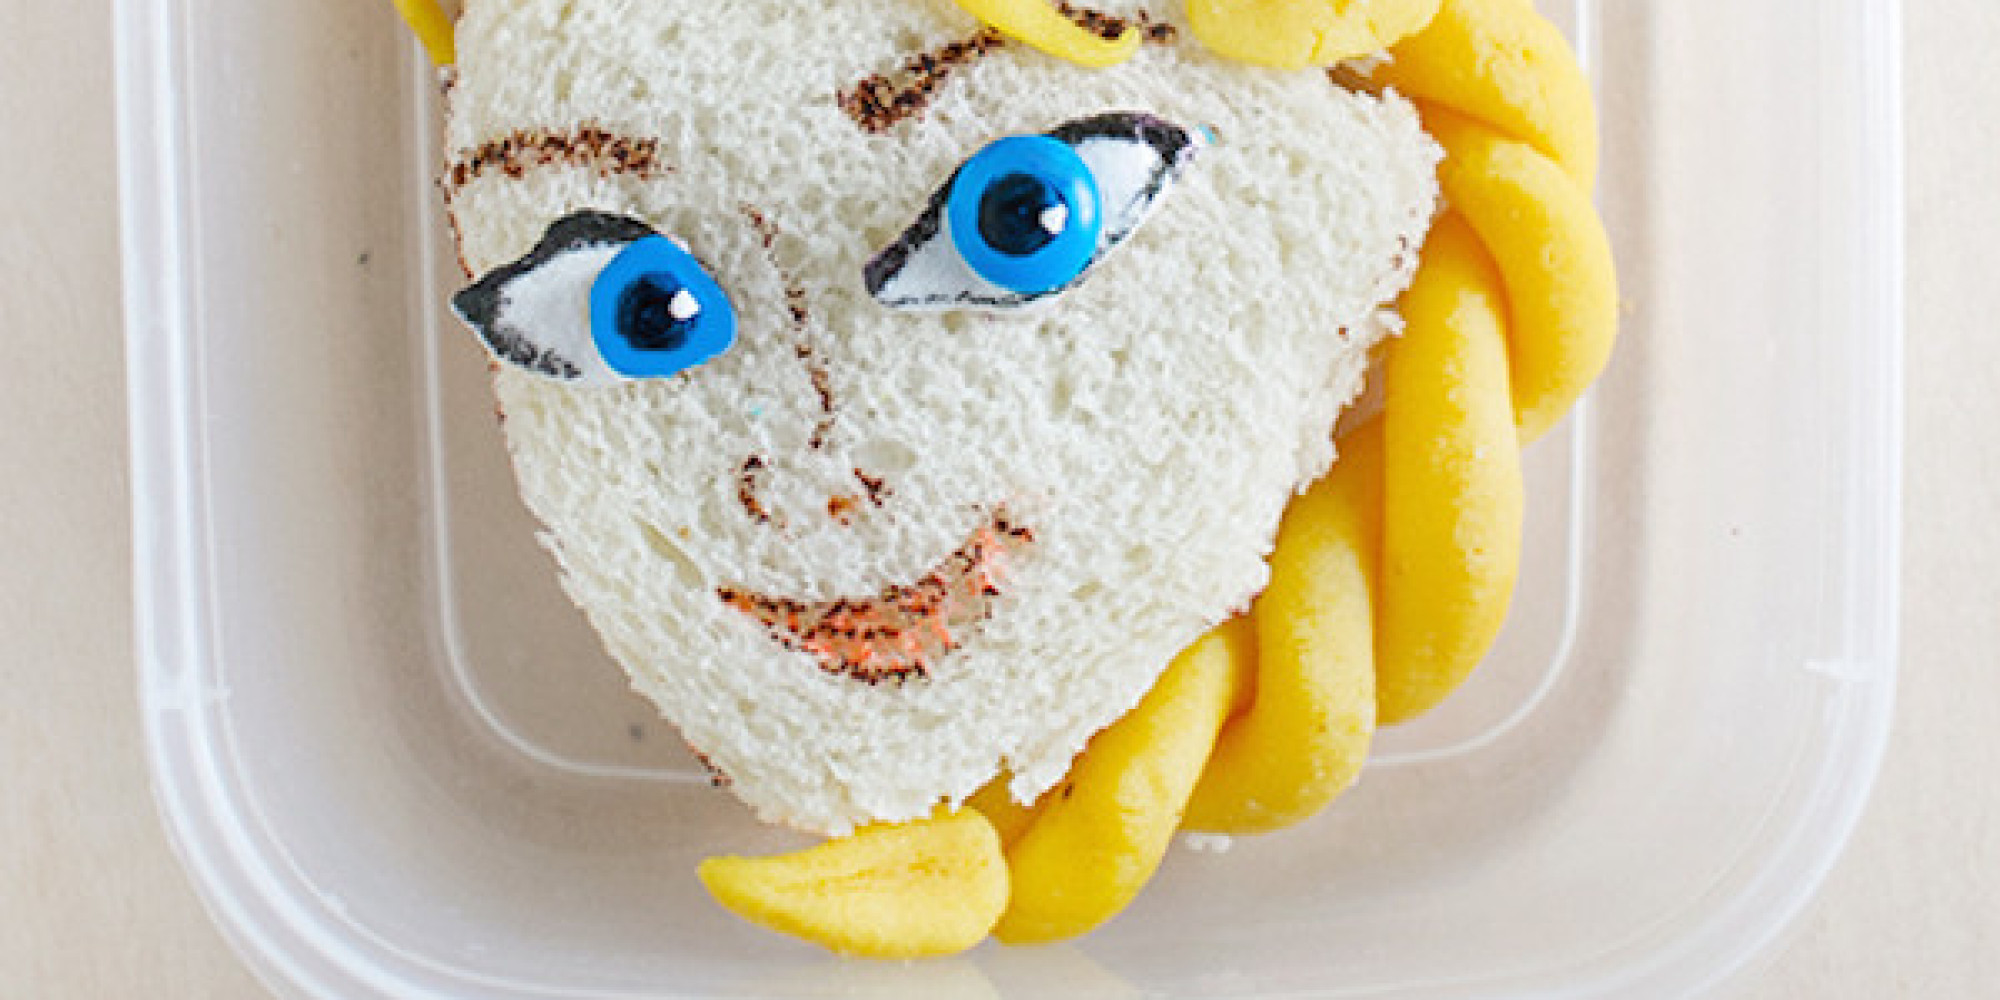 Wildly Creative Lunches We Dare You To Make At Home Huffpost